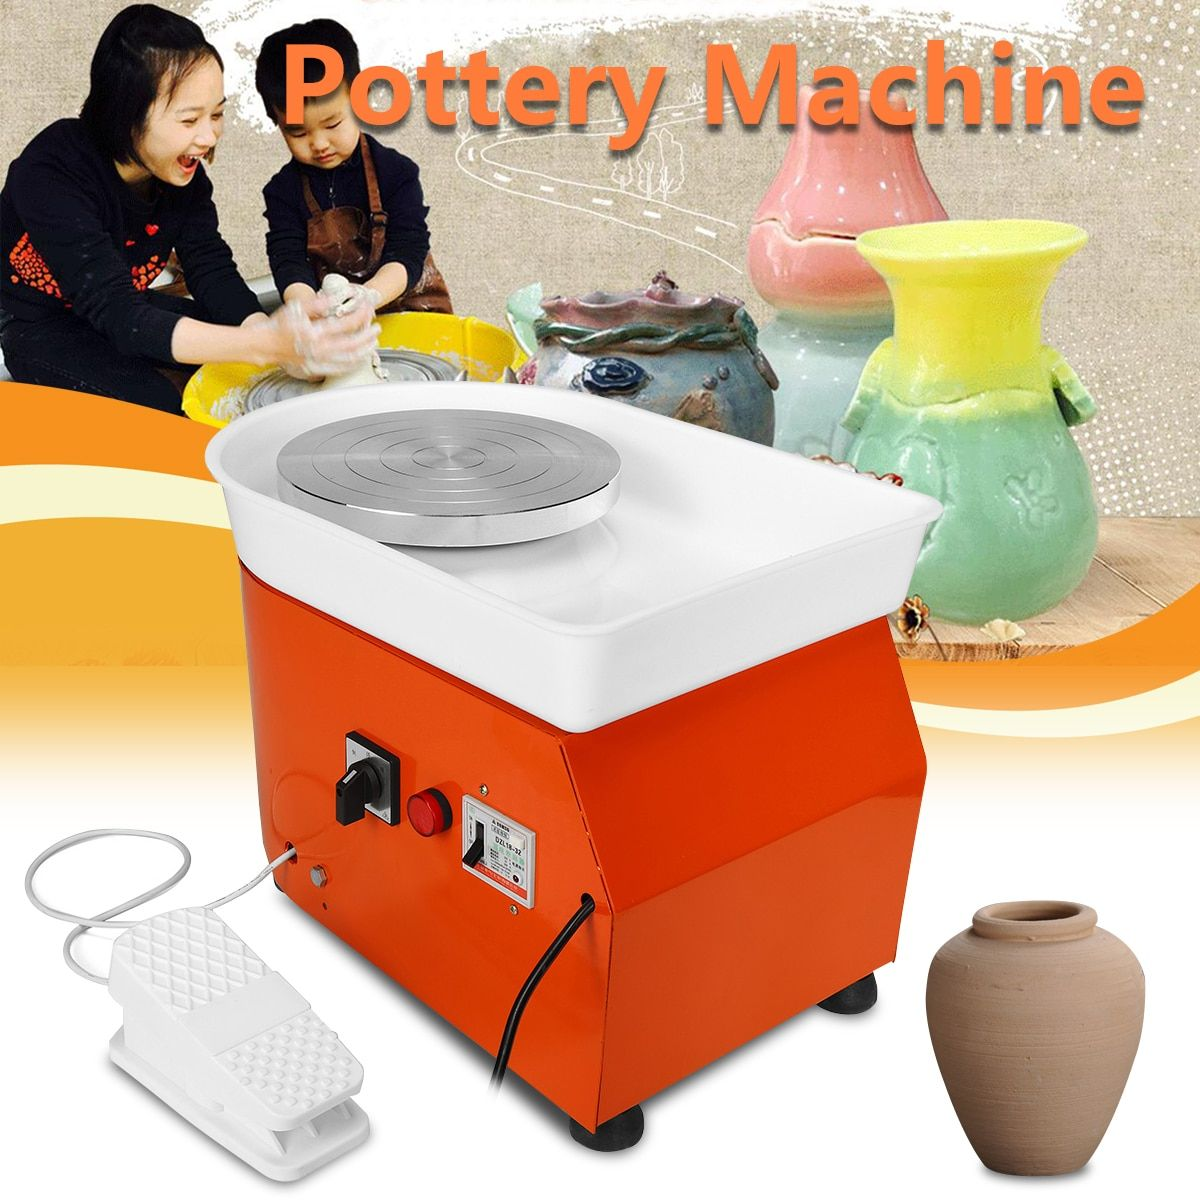 Flexible Foot Pedal Pottery Wheel Machine 25cm AC 220V 250W Ceramic Work Ceramics Clay Art EU/AU/US With Mobile Smooth Low Noise